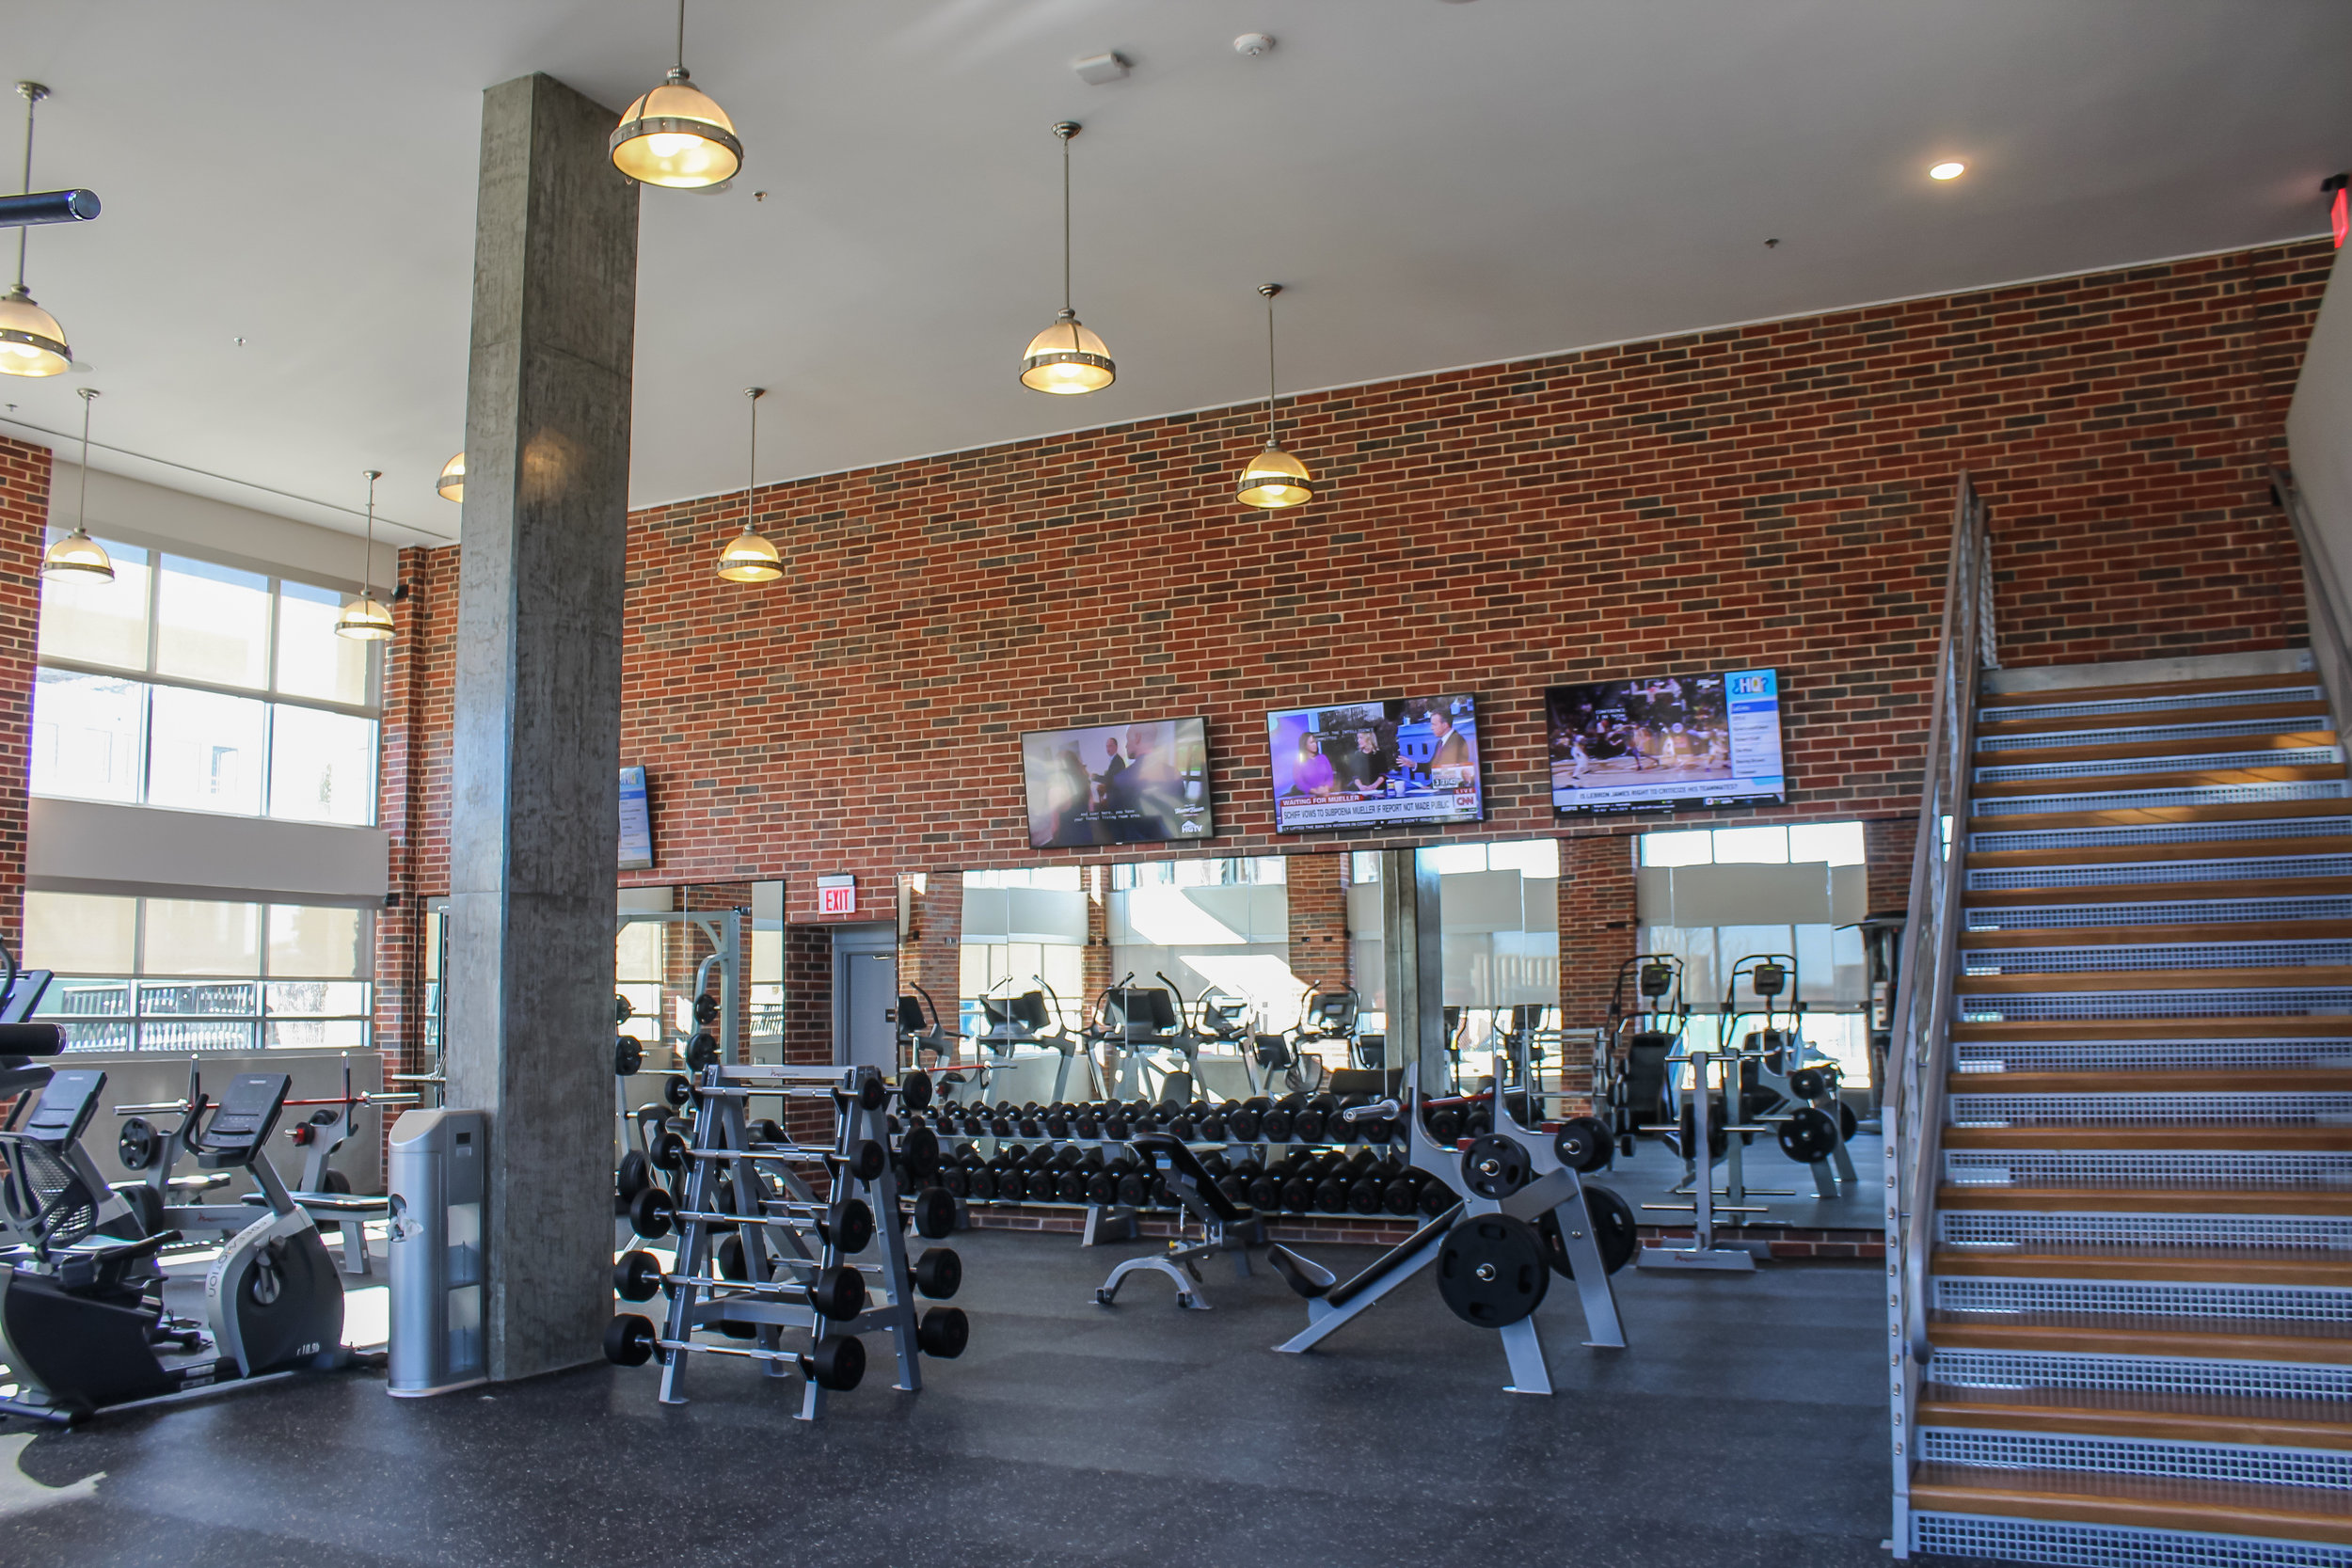 3 On-Site Fitness Centers